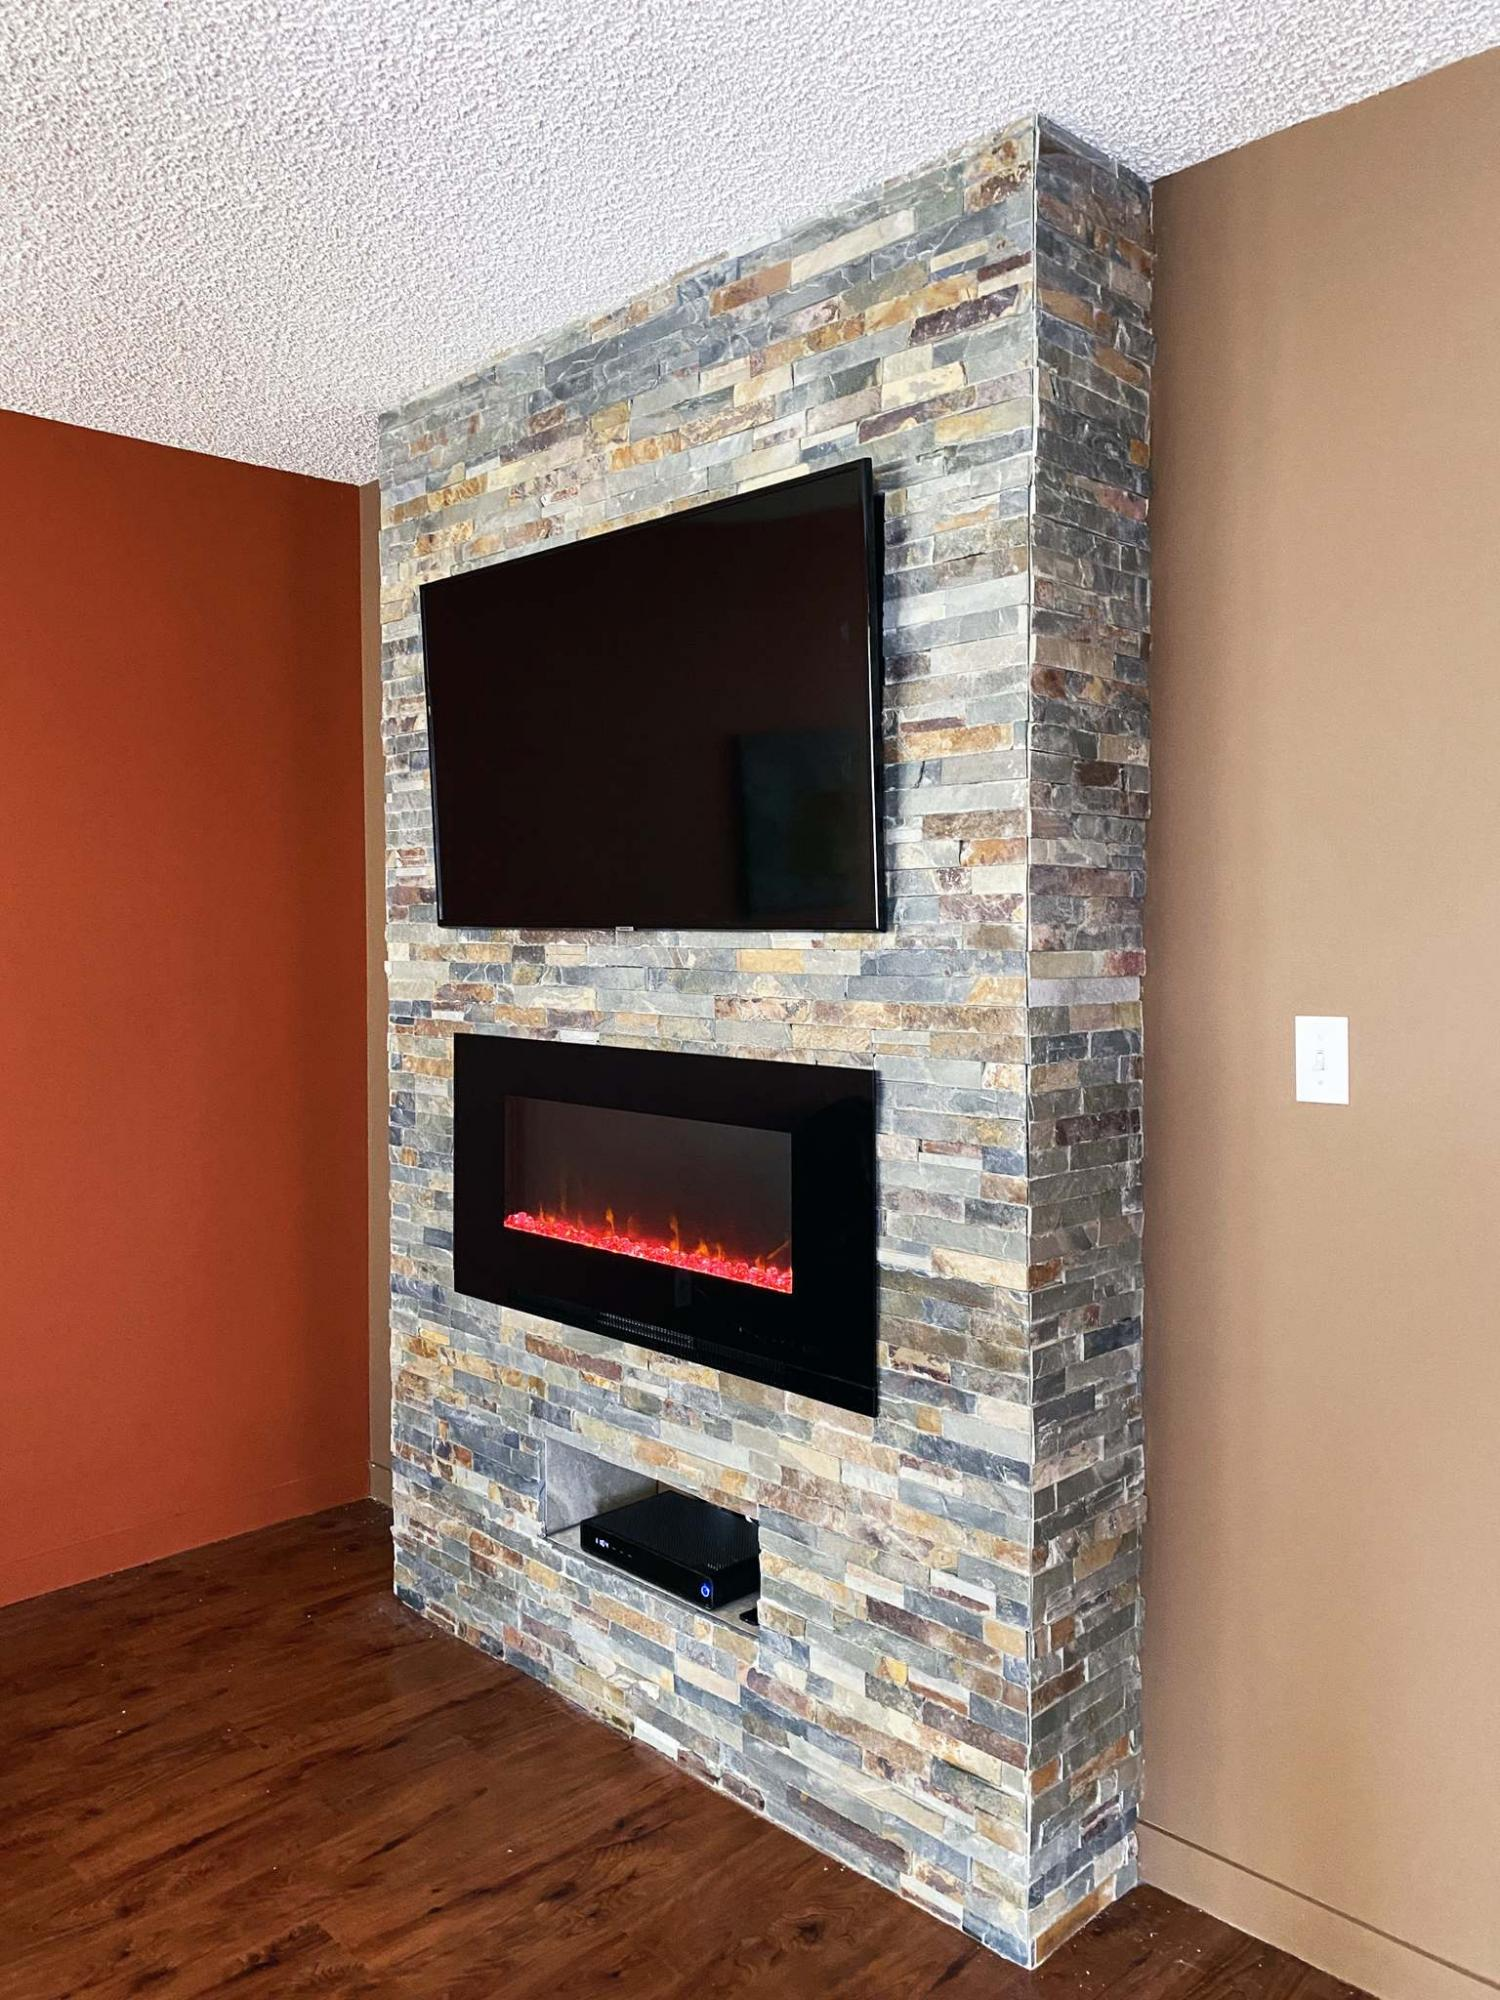 <p>Photos by Marc LaBossiere / Winnipeg Free Press</p><p>An interior decorative natural stone was used to sheath the exterior facades of the feature unit, while a smooth matching tile was used within the TV cavity and lower shelf. </p></p>